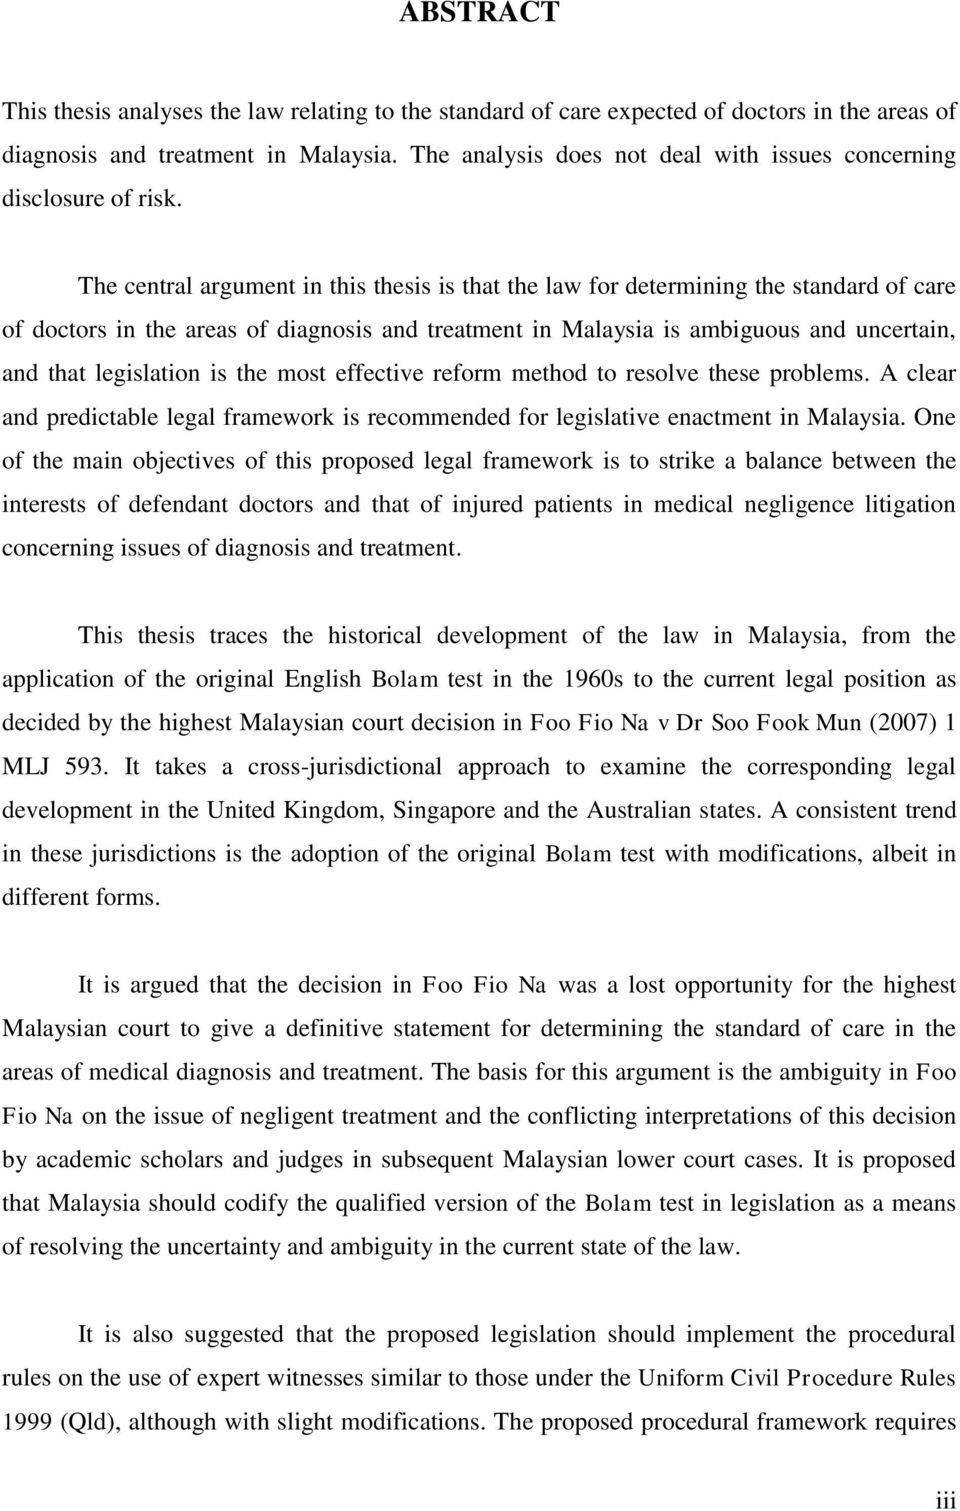 The central argument in this thesis is that the law for determining the standard of care of doctors in the areas of diagnosis and treatment in Malaysia is ambiguous and uncertain, and that